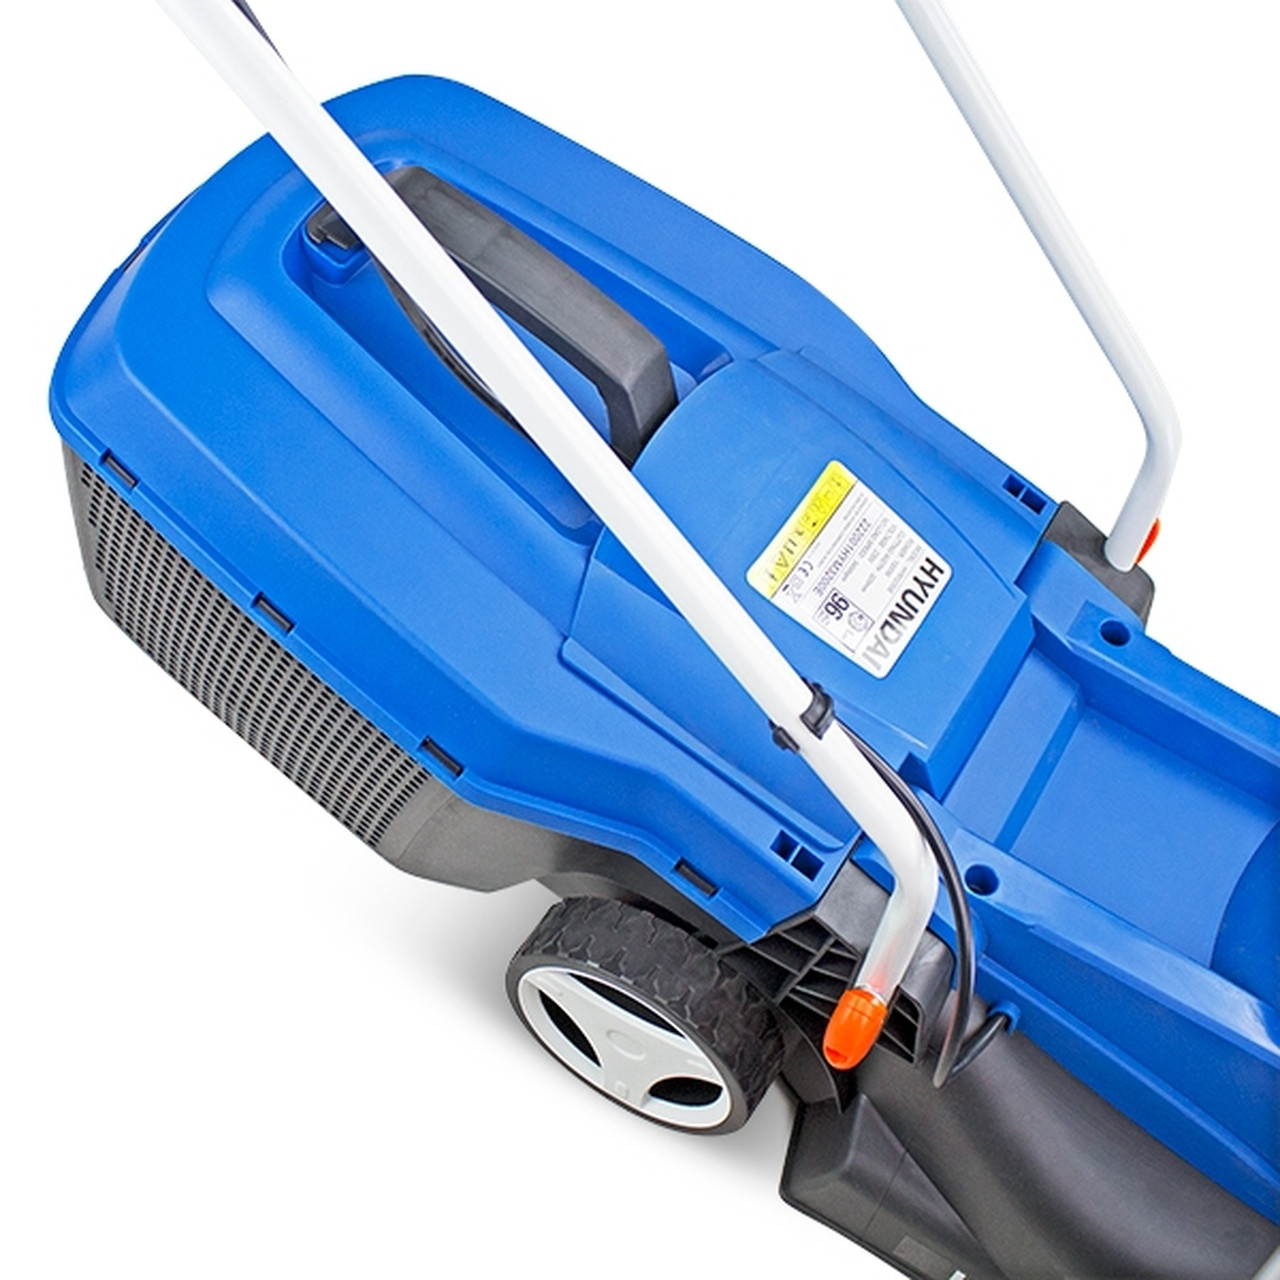 Hyundai Grass Trimmer and Lawnmower Package. This low-cost lawnmower and grass trimmer combo is suitable for tiny gardens. Supplied by Pressure Pump Solutions Ltd of Penistone